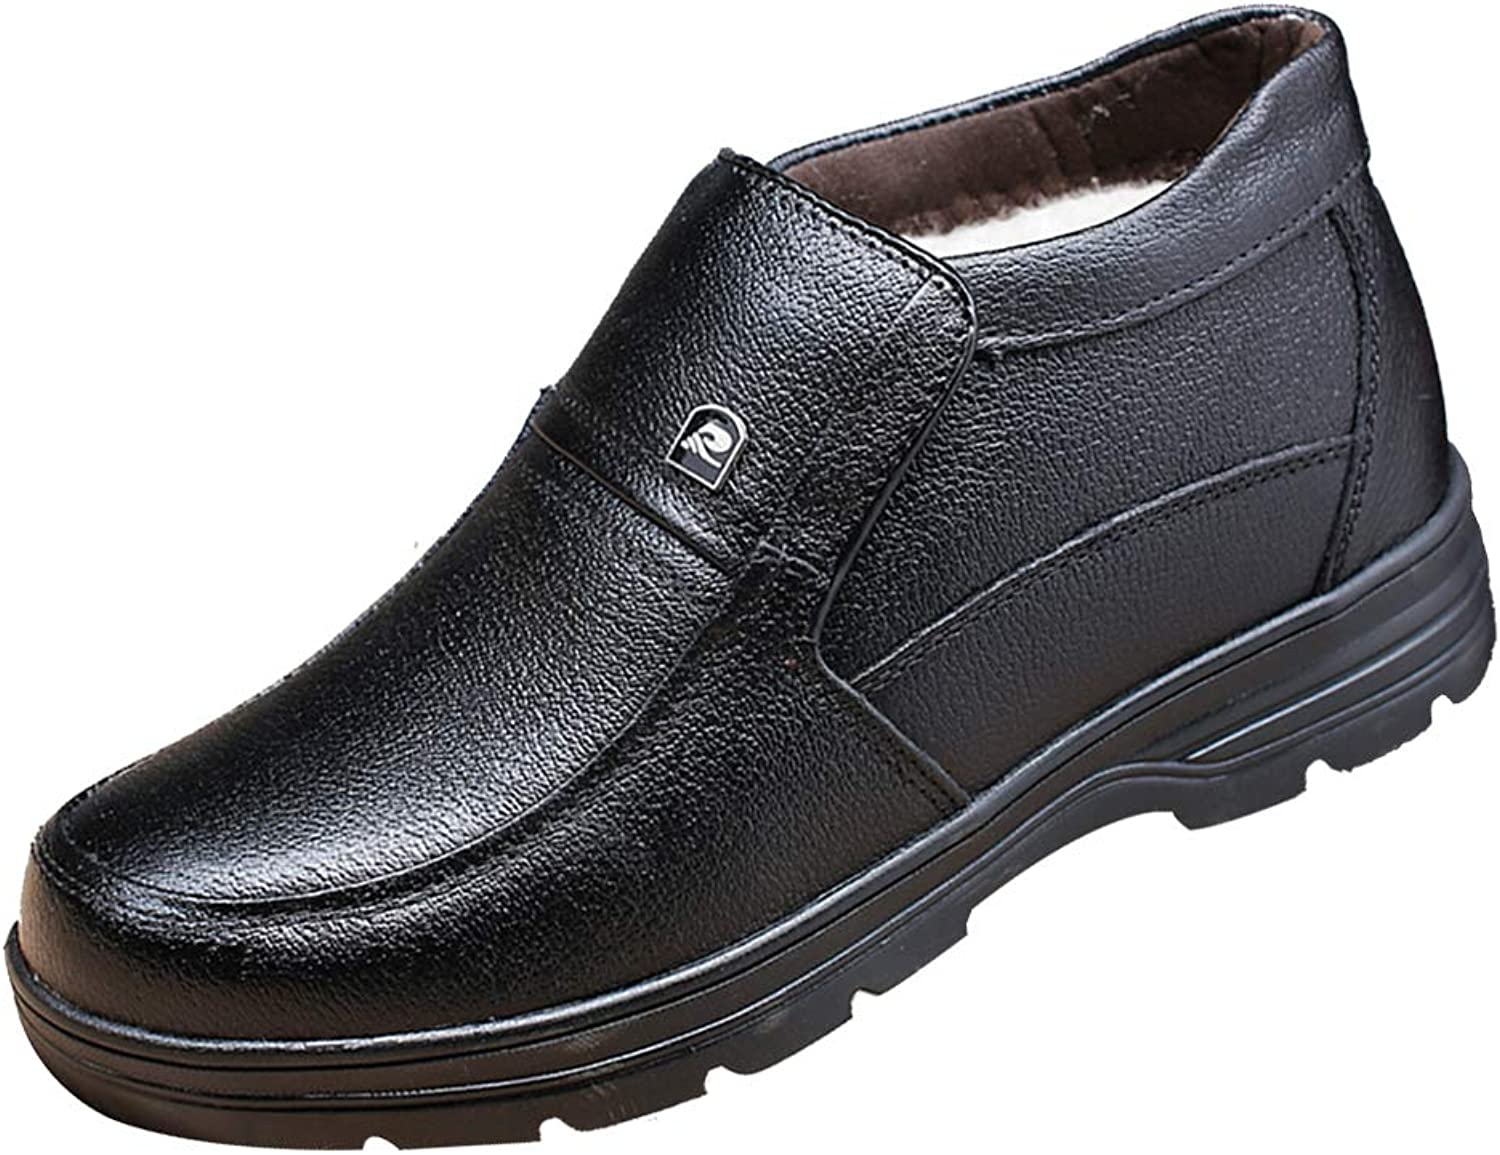 Men's Reproduction Leather shoes,Cotton shoes snow boots,Classic shoes with Hand Stitched,Old man's Warm Leather Boots